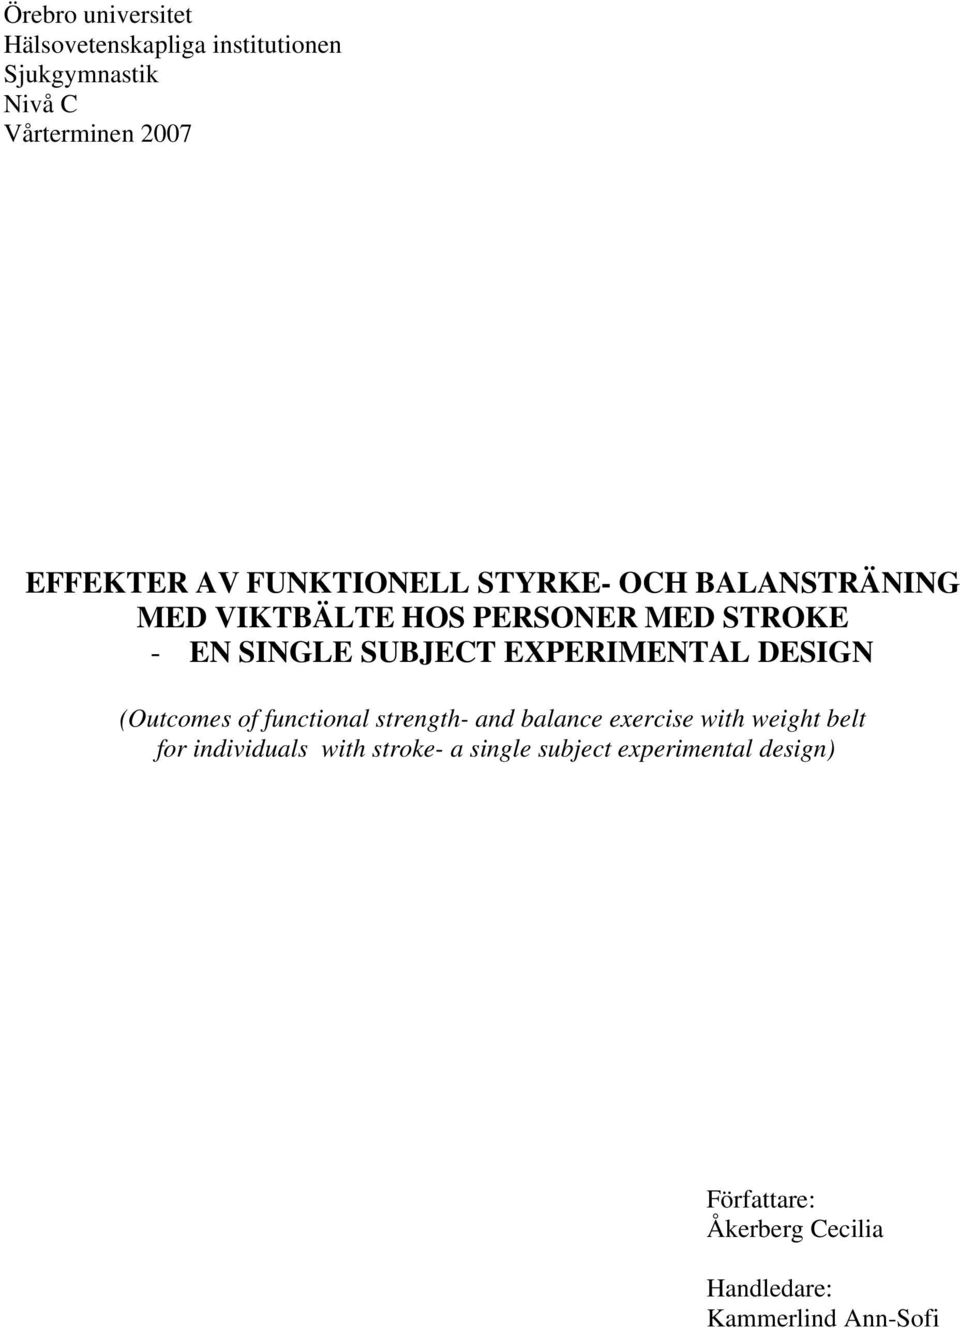 EXPERIMENTAL DESIGN (Outcomes of functional strength- and balance exercise with weight belt for